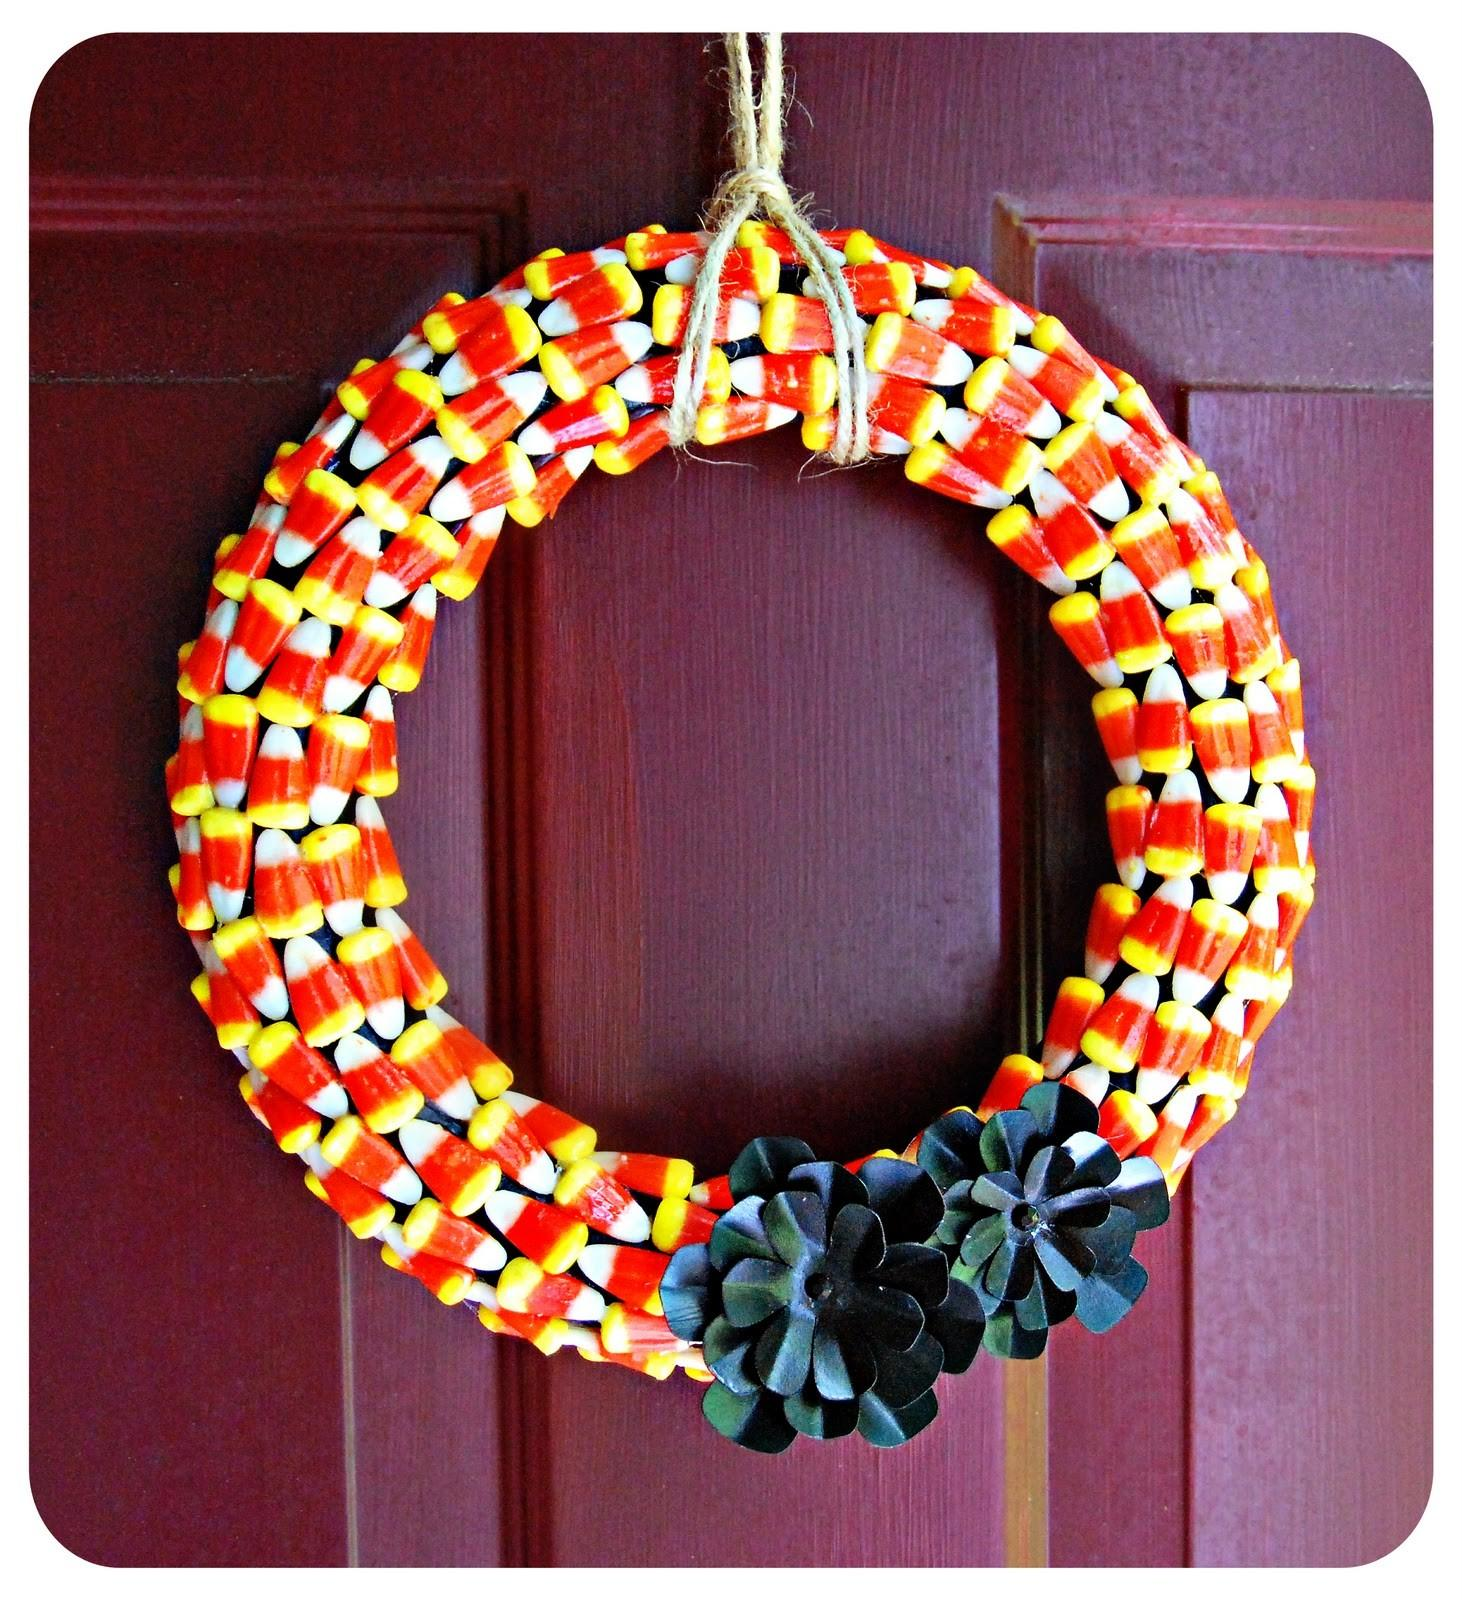 Blushing Bee Halloween Wreath Diy Craft